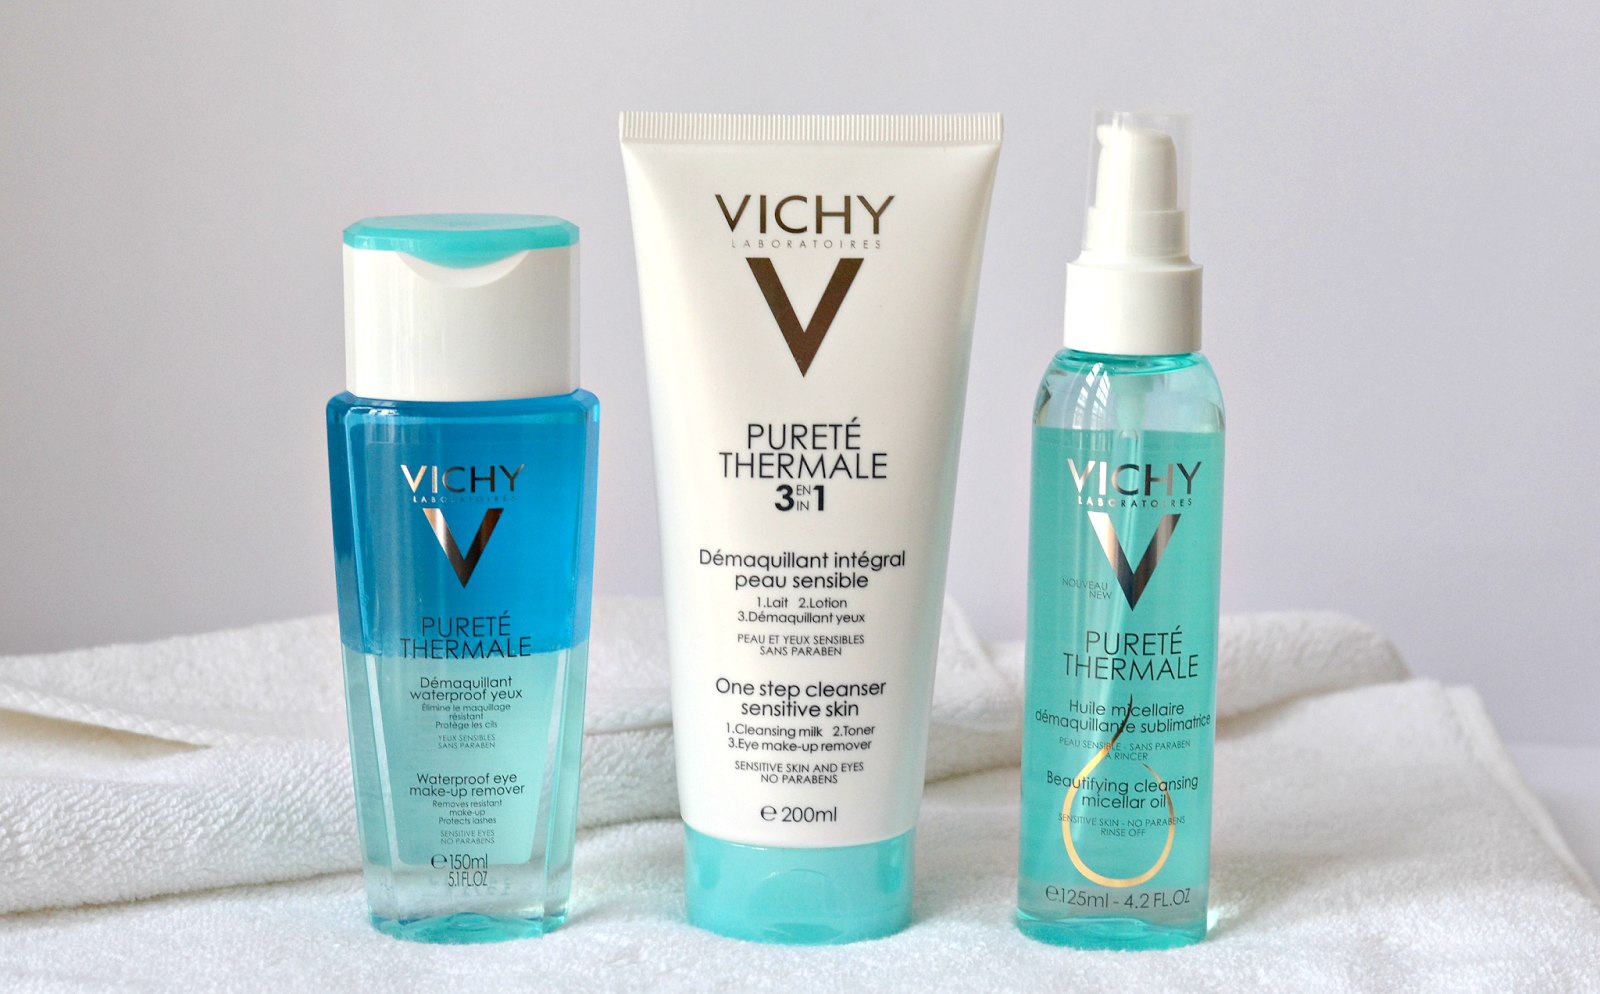 vichy_purete-thermale_cleanse_deponline